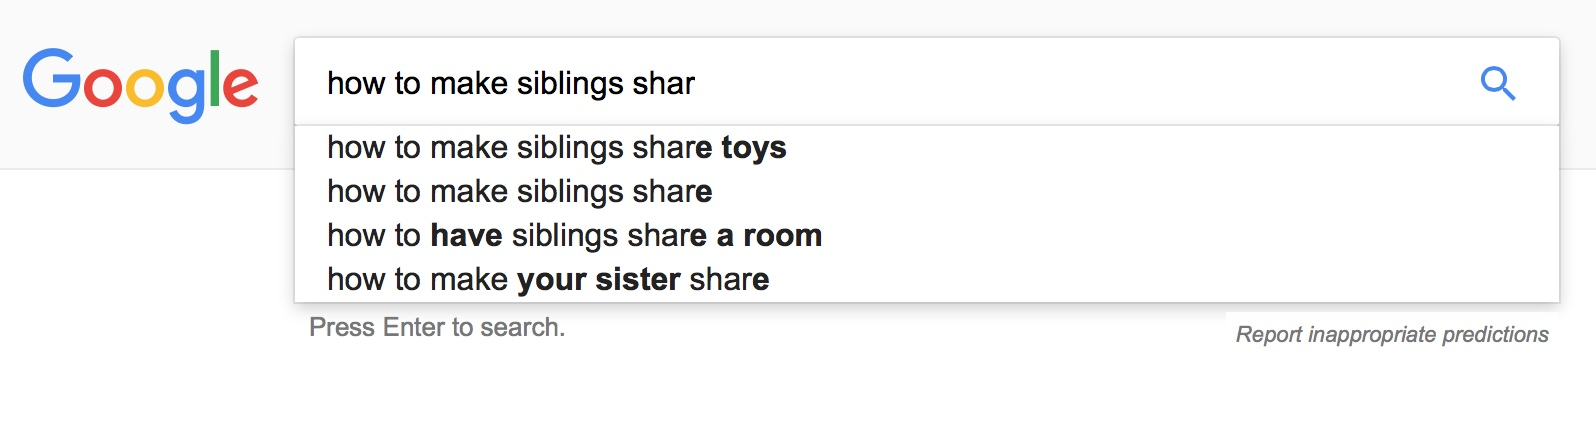 sharesearch